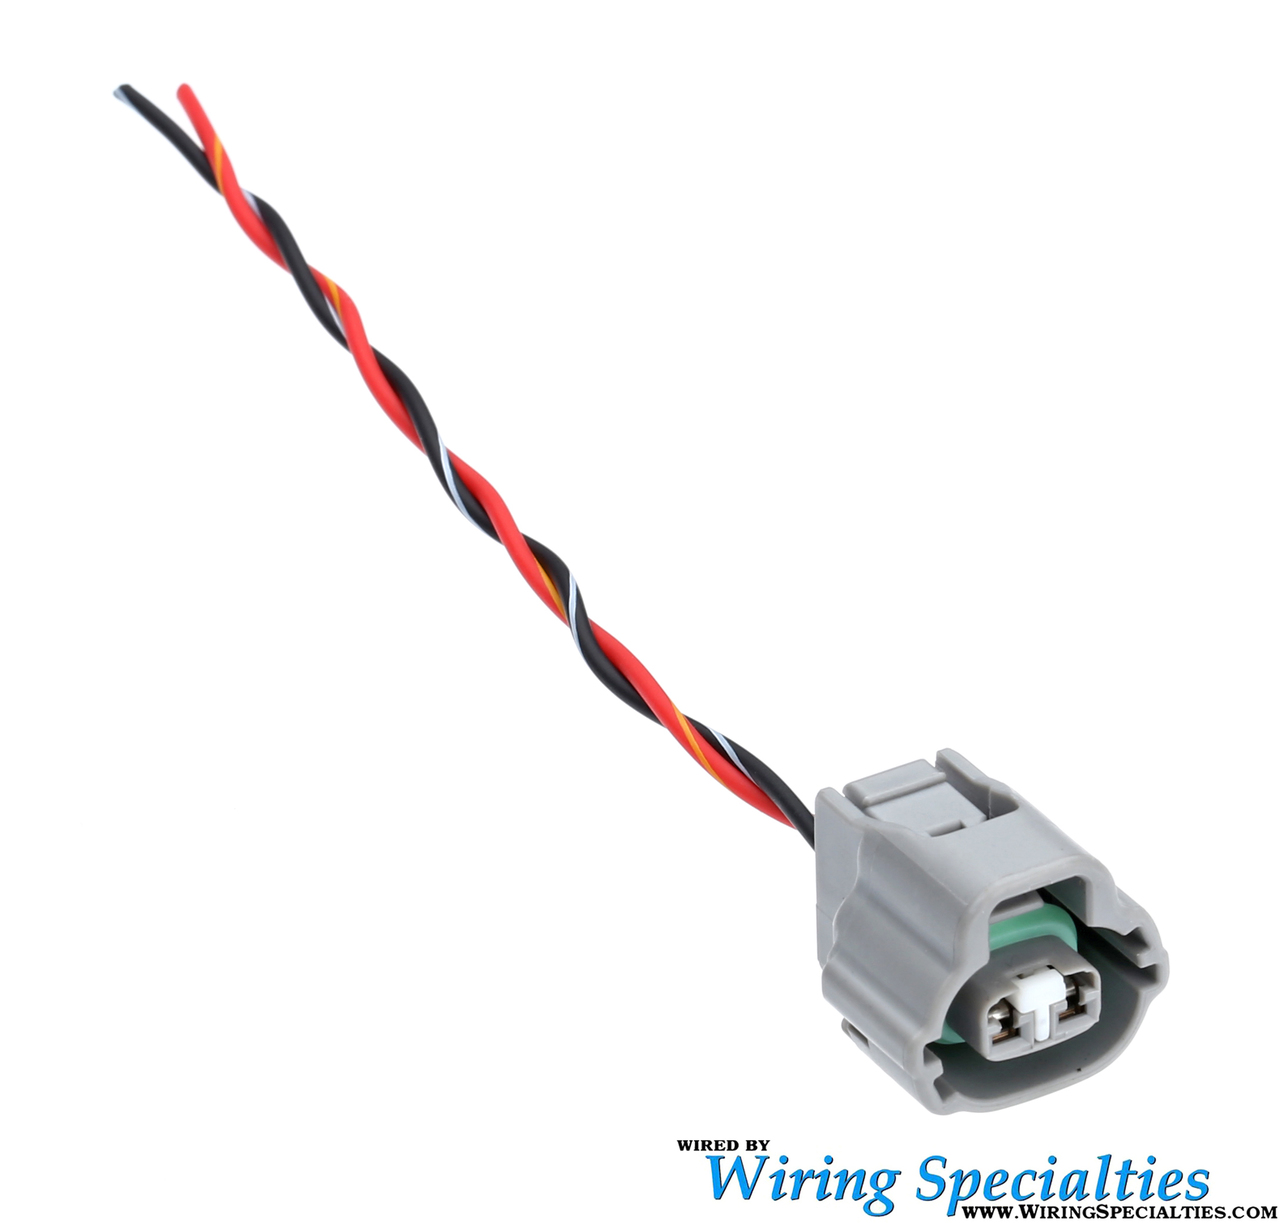 Wiring Specialties 2jz The Portal And Forum Of Diagram Nissan 240sx S14 Sr20det Transmission Harness 1jz Vvti Etcsi Solenoid Connector 68 C10